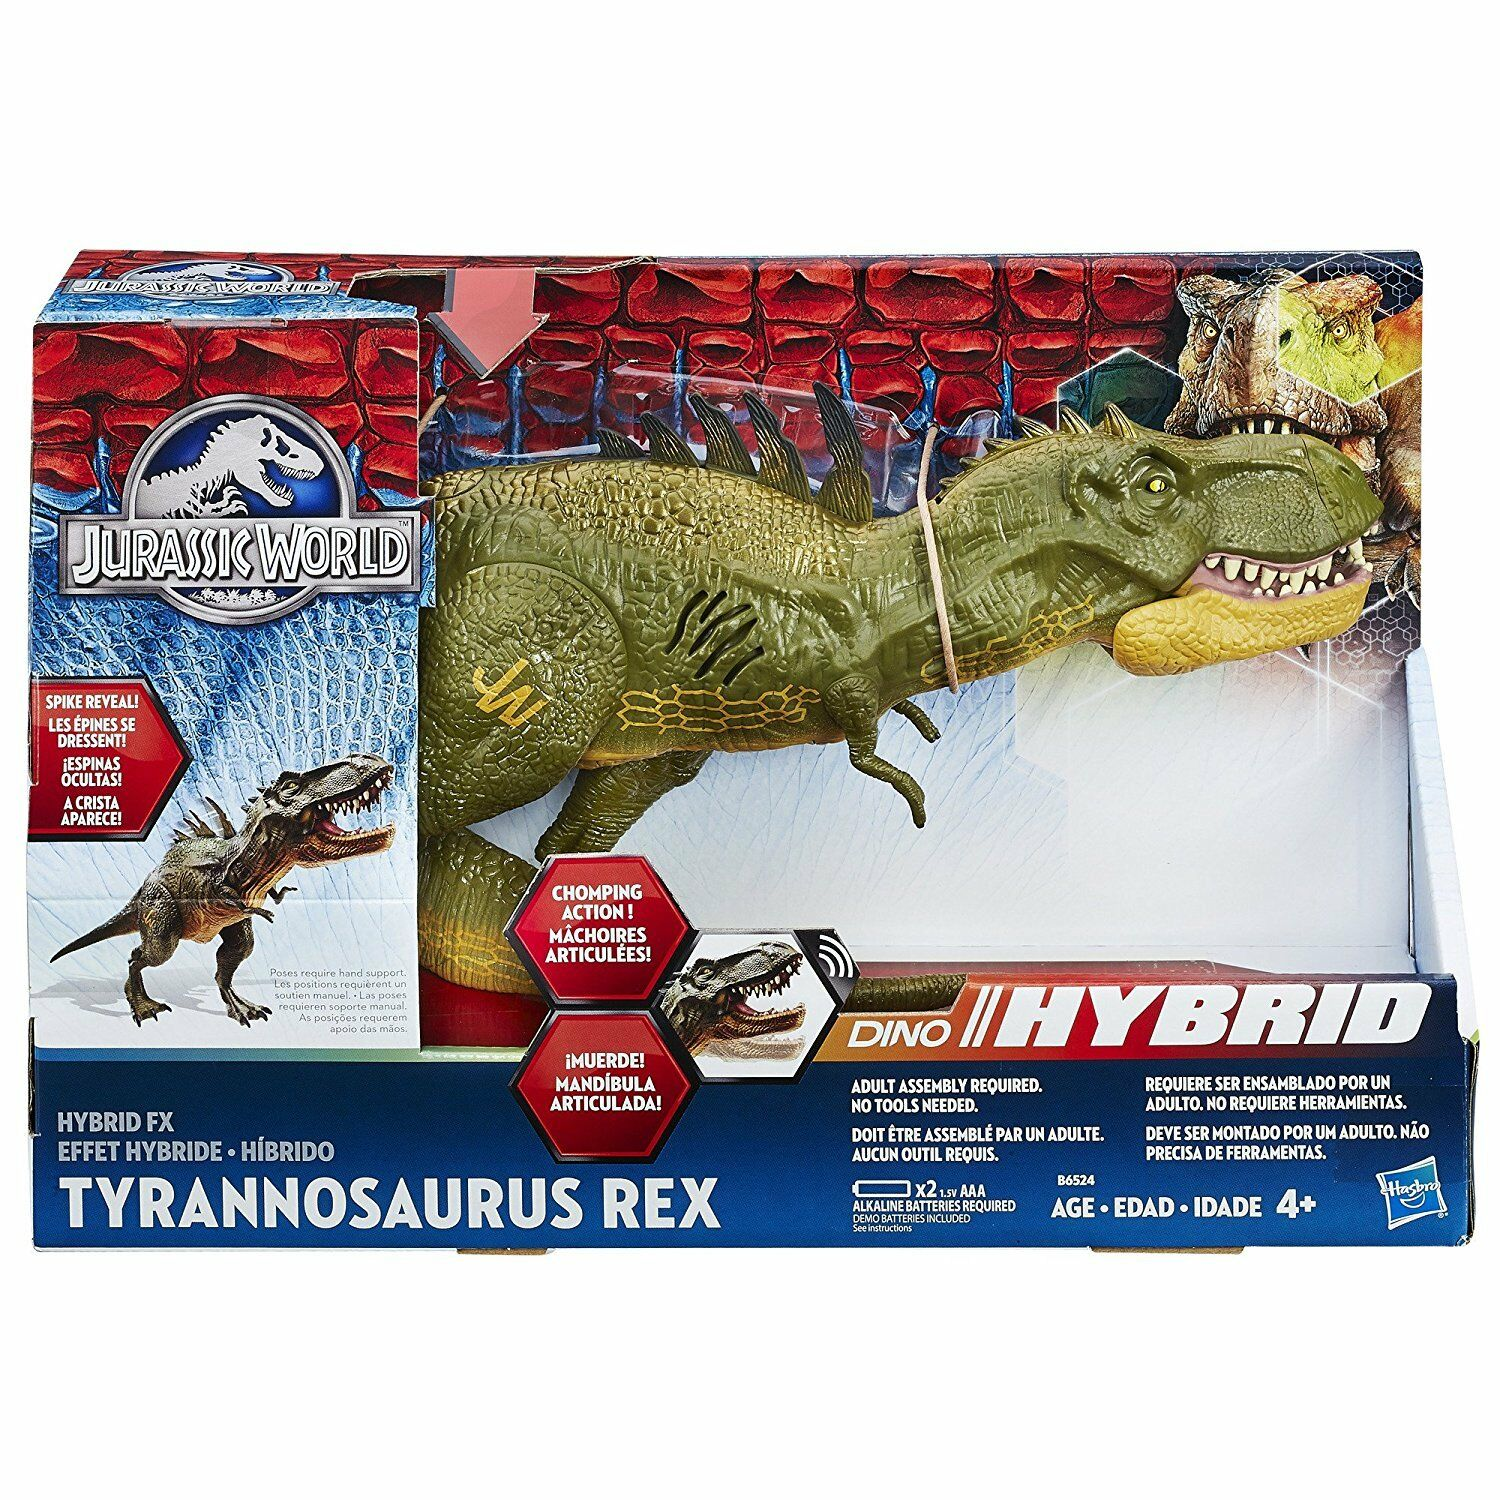 Jurassic World Dino Hybrid Tyrannosaurus Rex Action Figure Kids Toy Gift New